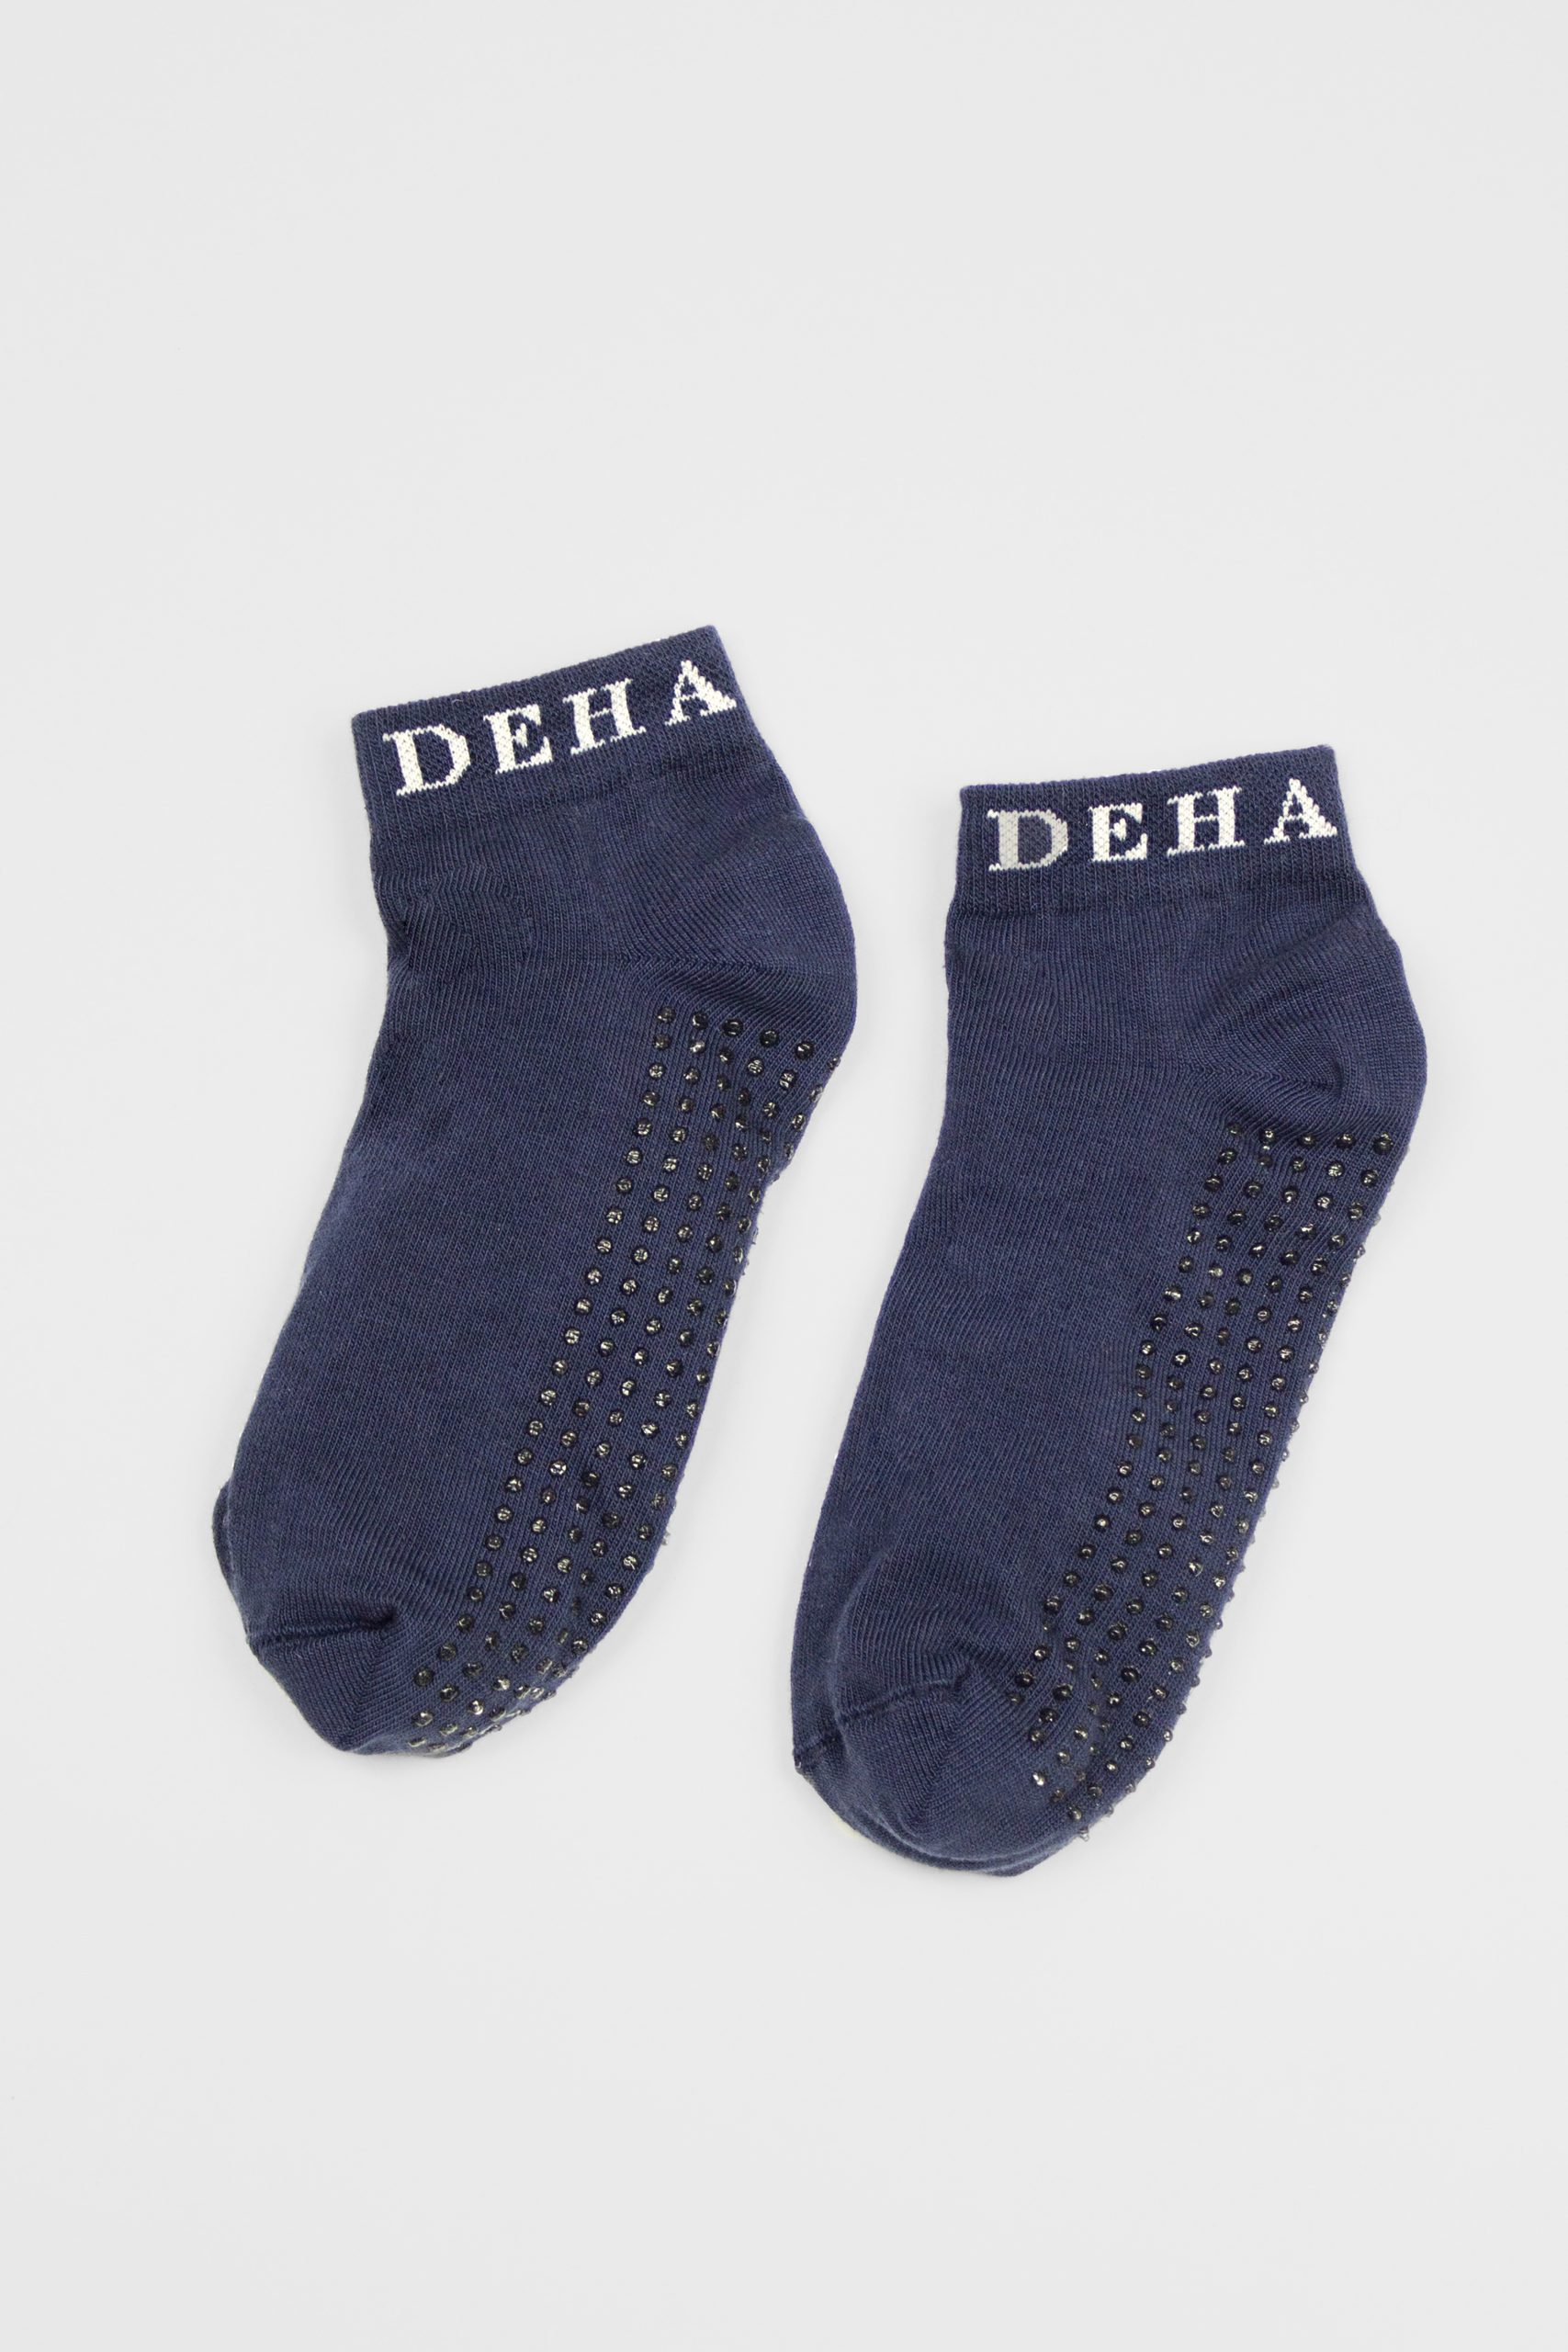 Antislip Ballet Socks | Ballet Clothes | Deha | BALLETONIST